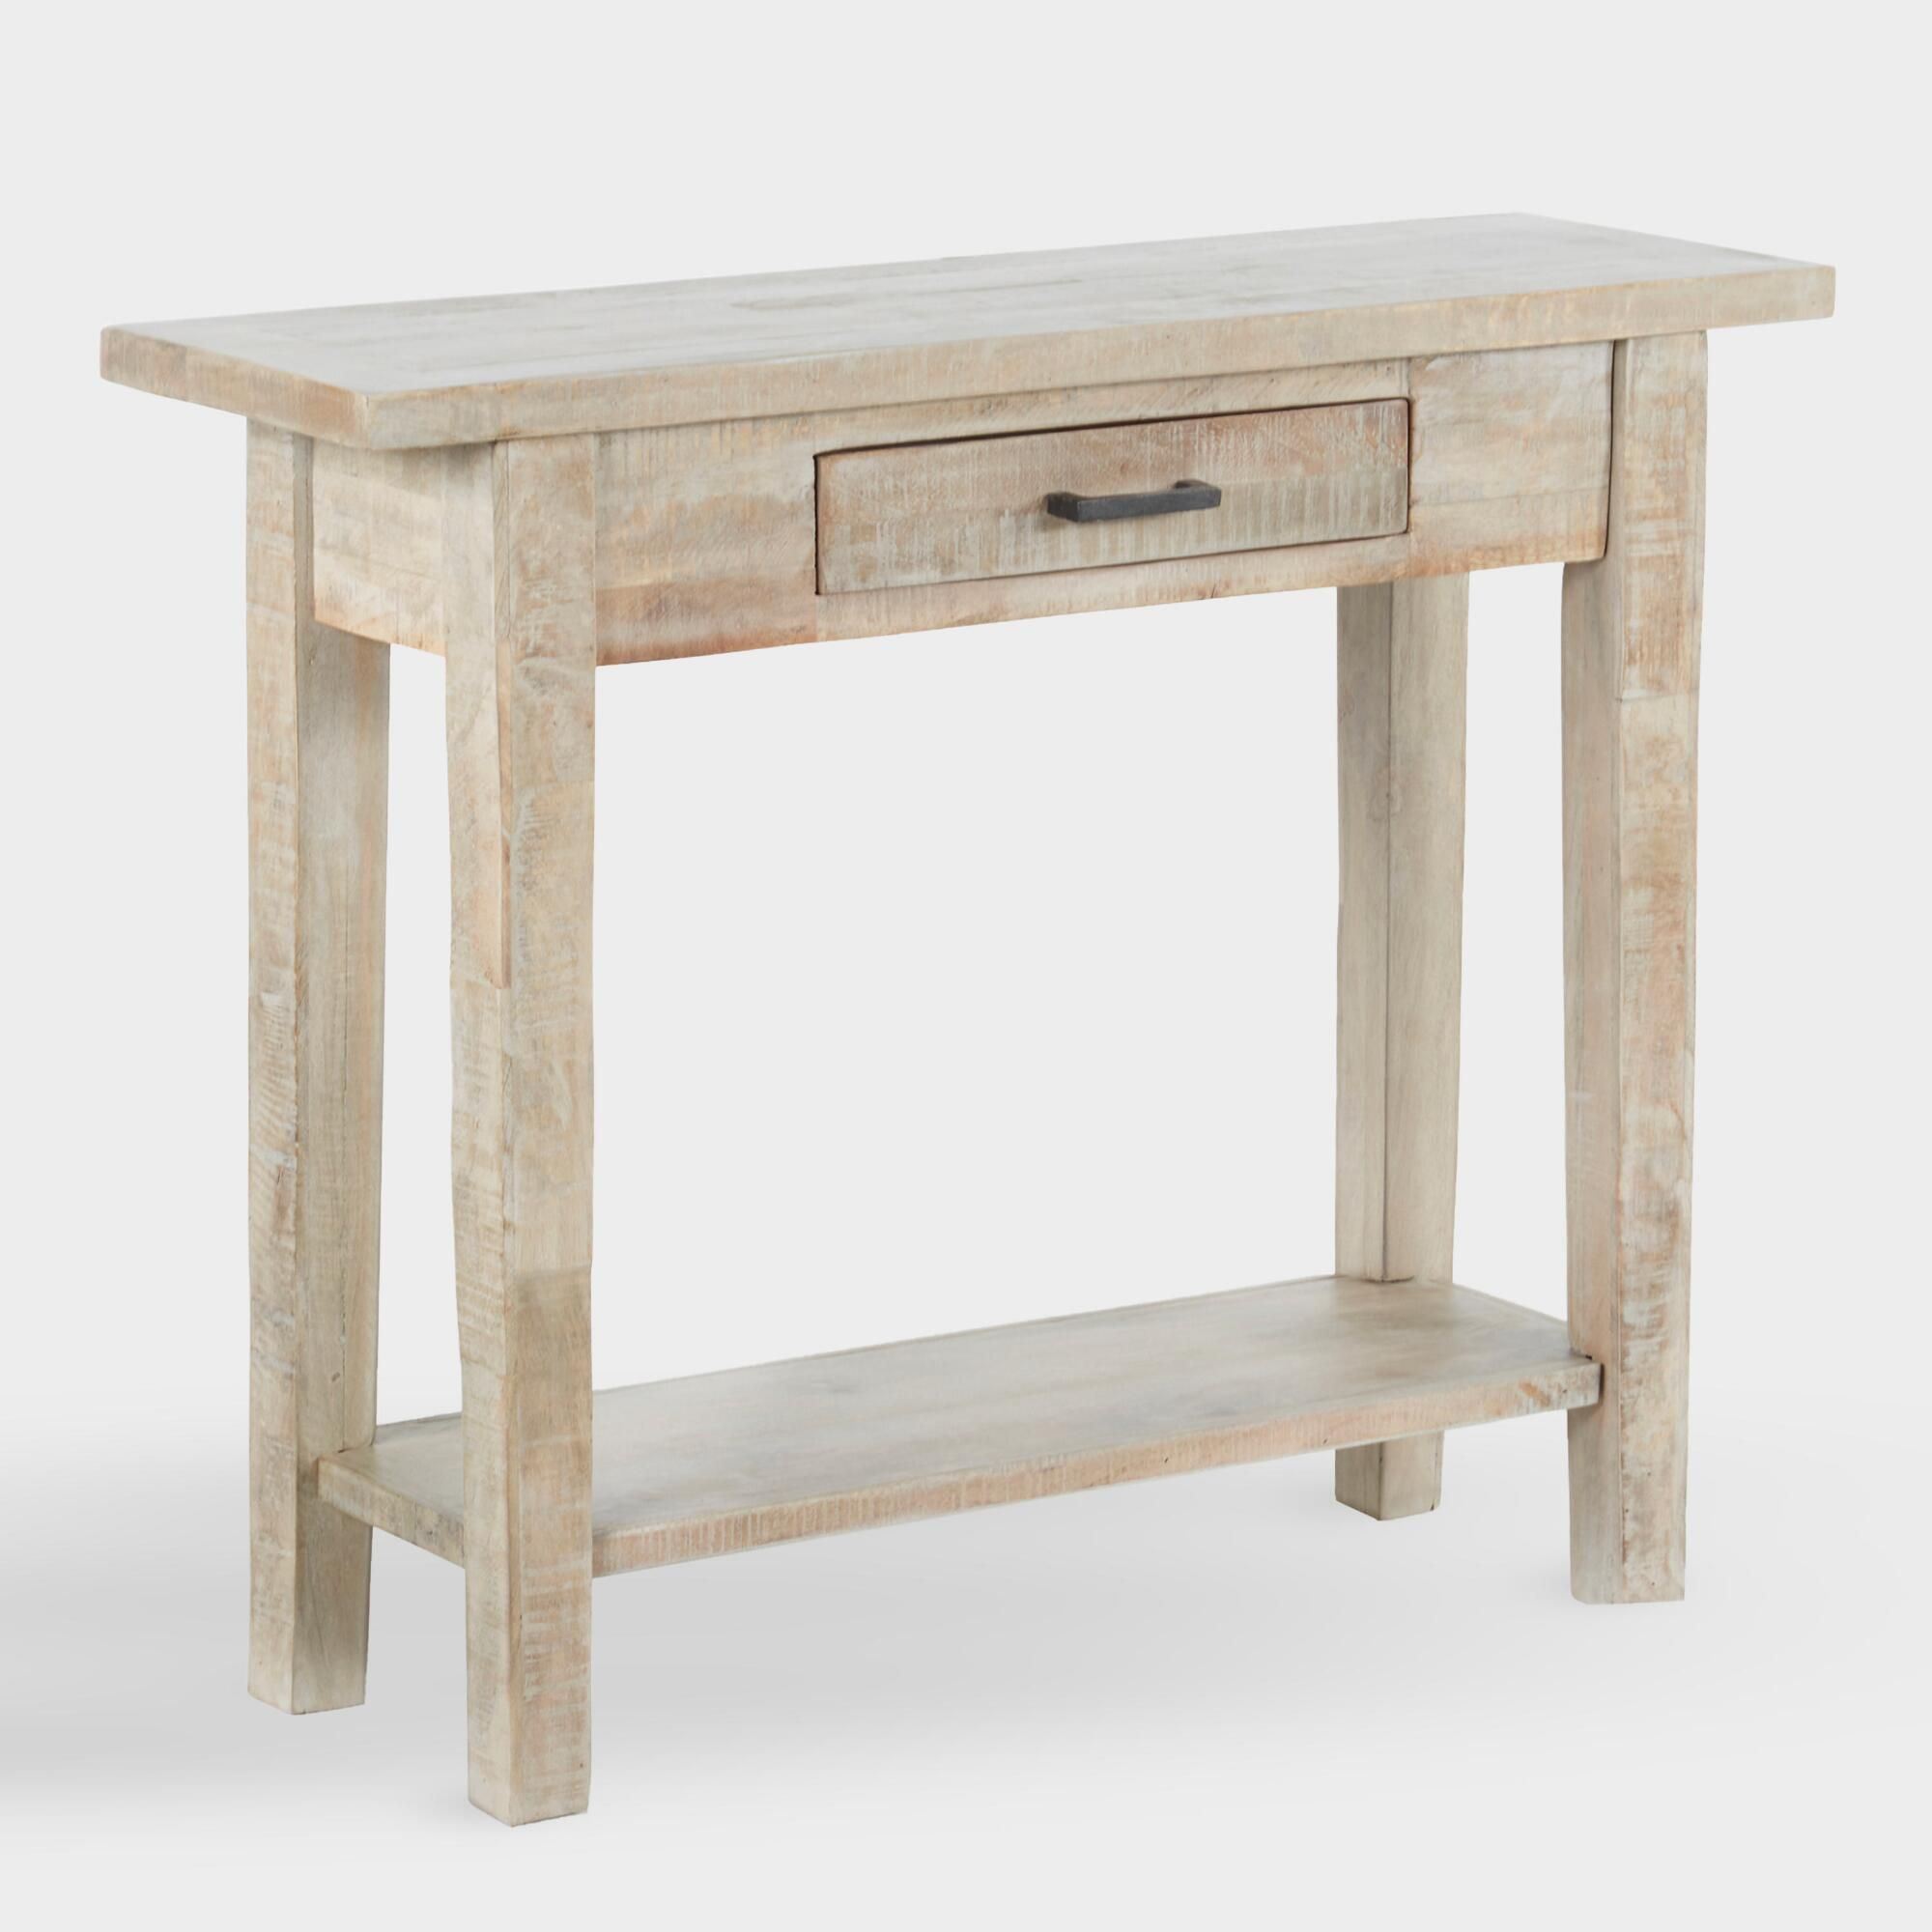 Awe Inspiring Whitewash Wood Leigh Console Table By World Market In 2019 Caraccident5 Cool Chair Designs And Ideas Caraccident5Info